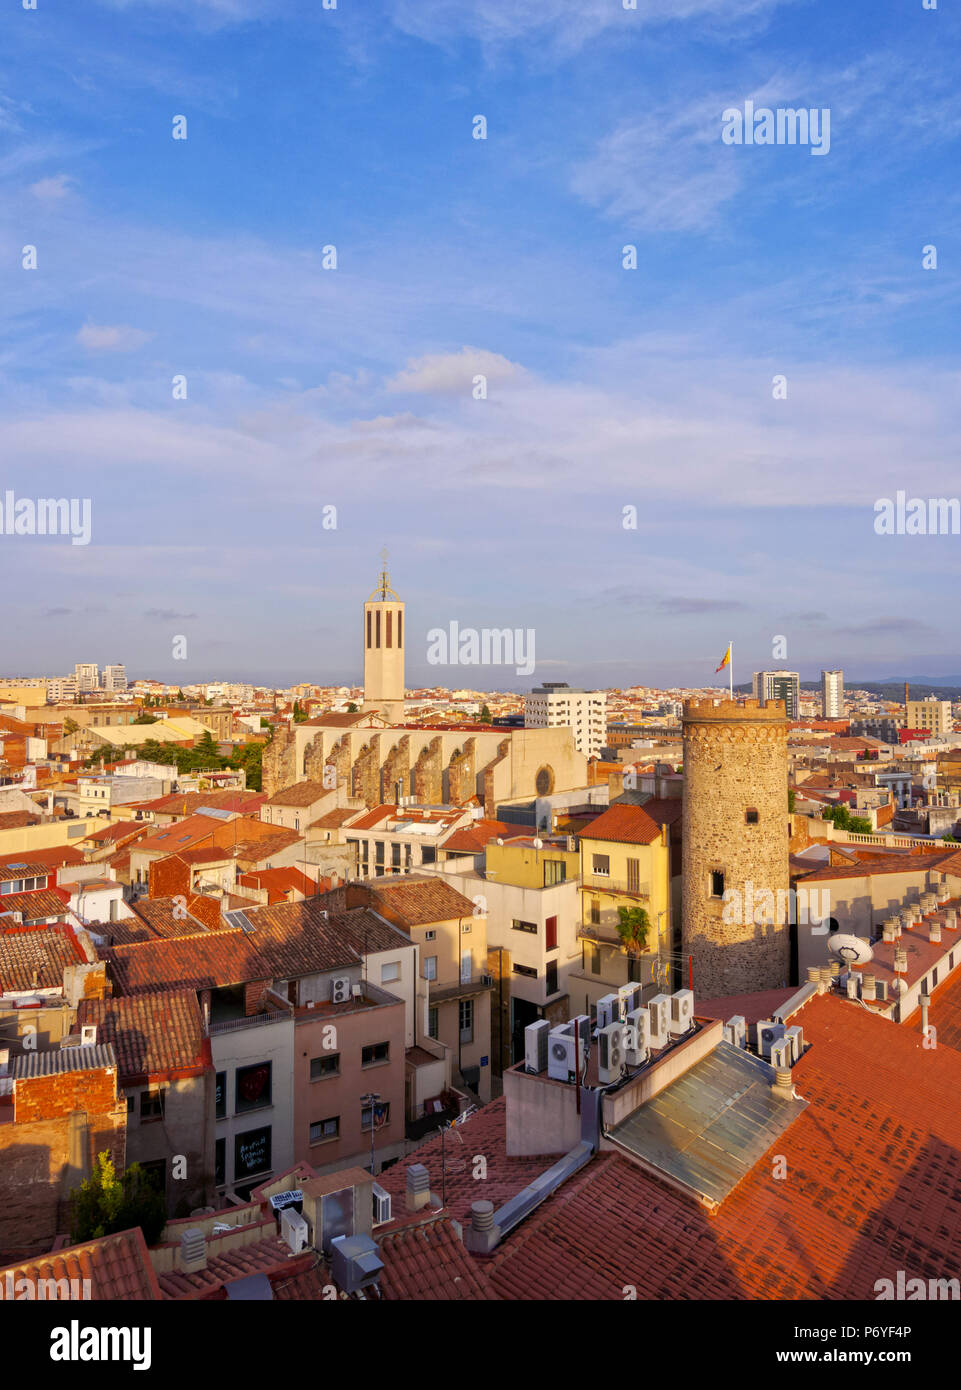 Spain, Catalonia, Barcelona Province, Terrassa, Elevated view of the city with the Torre del Palau and the Catedral Basilica del Sant Esperit. - Stock Image